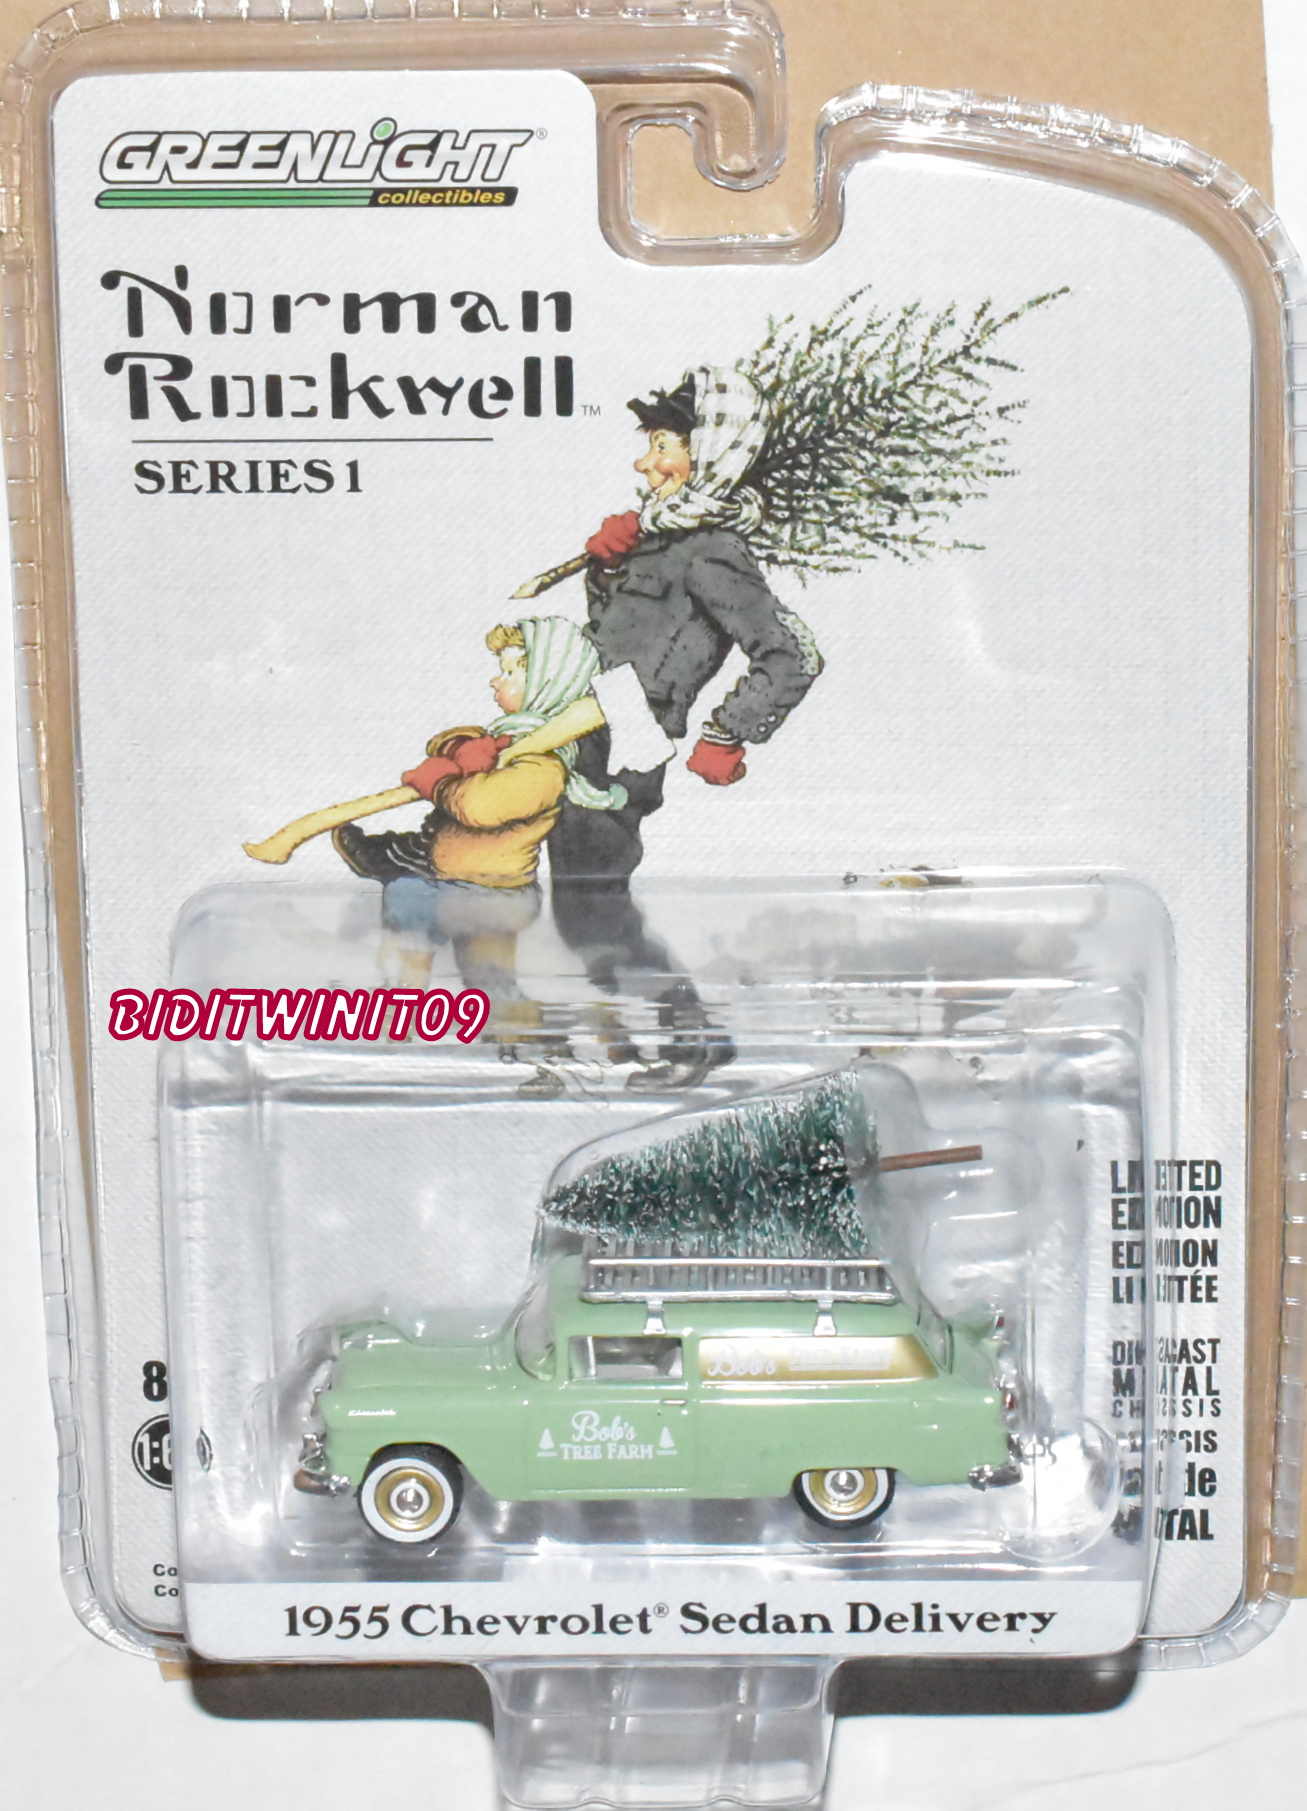 GREENLIGHT NORMAN ROCKWELL 1955 CHEVROLET SEDAN DELIVERY SERIES 1 IN-STOCK